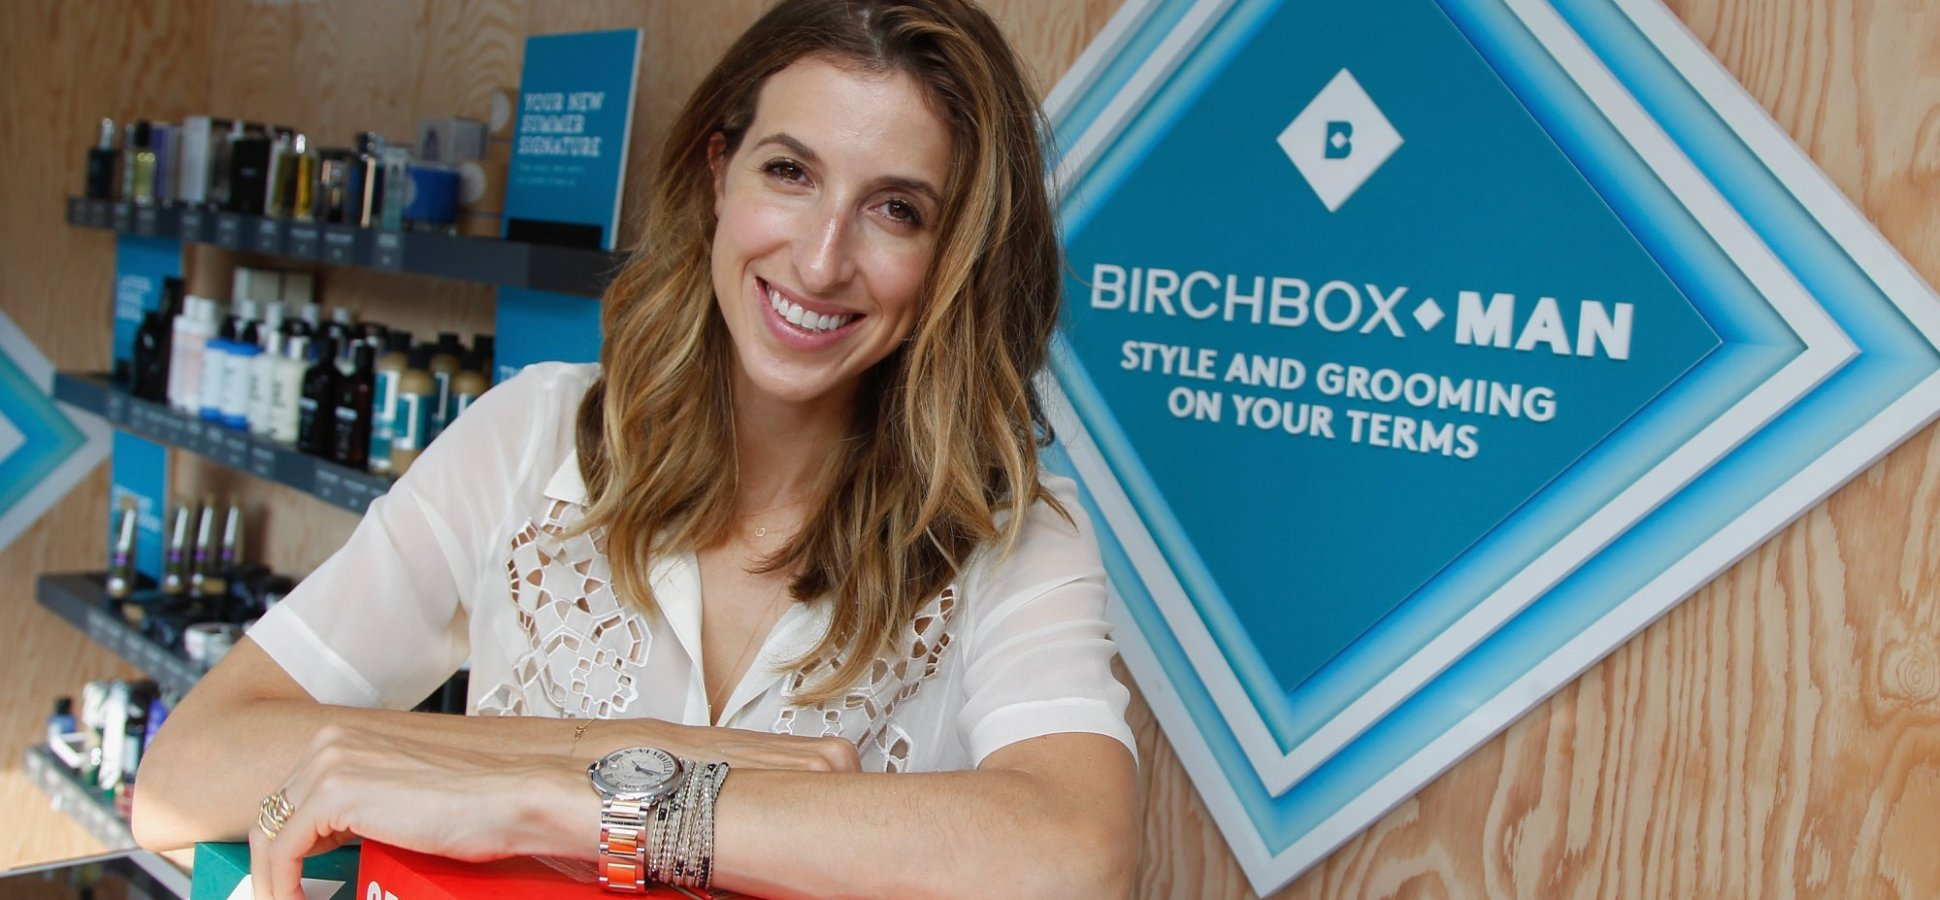 Watch Heres What the Co-Founder of Birchbox Always Takes on Holiday With Her video